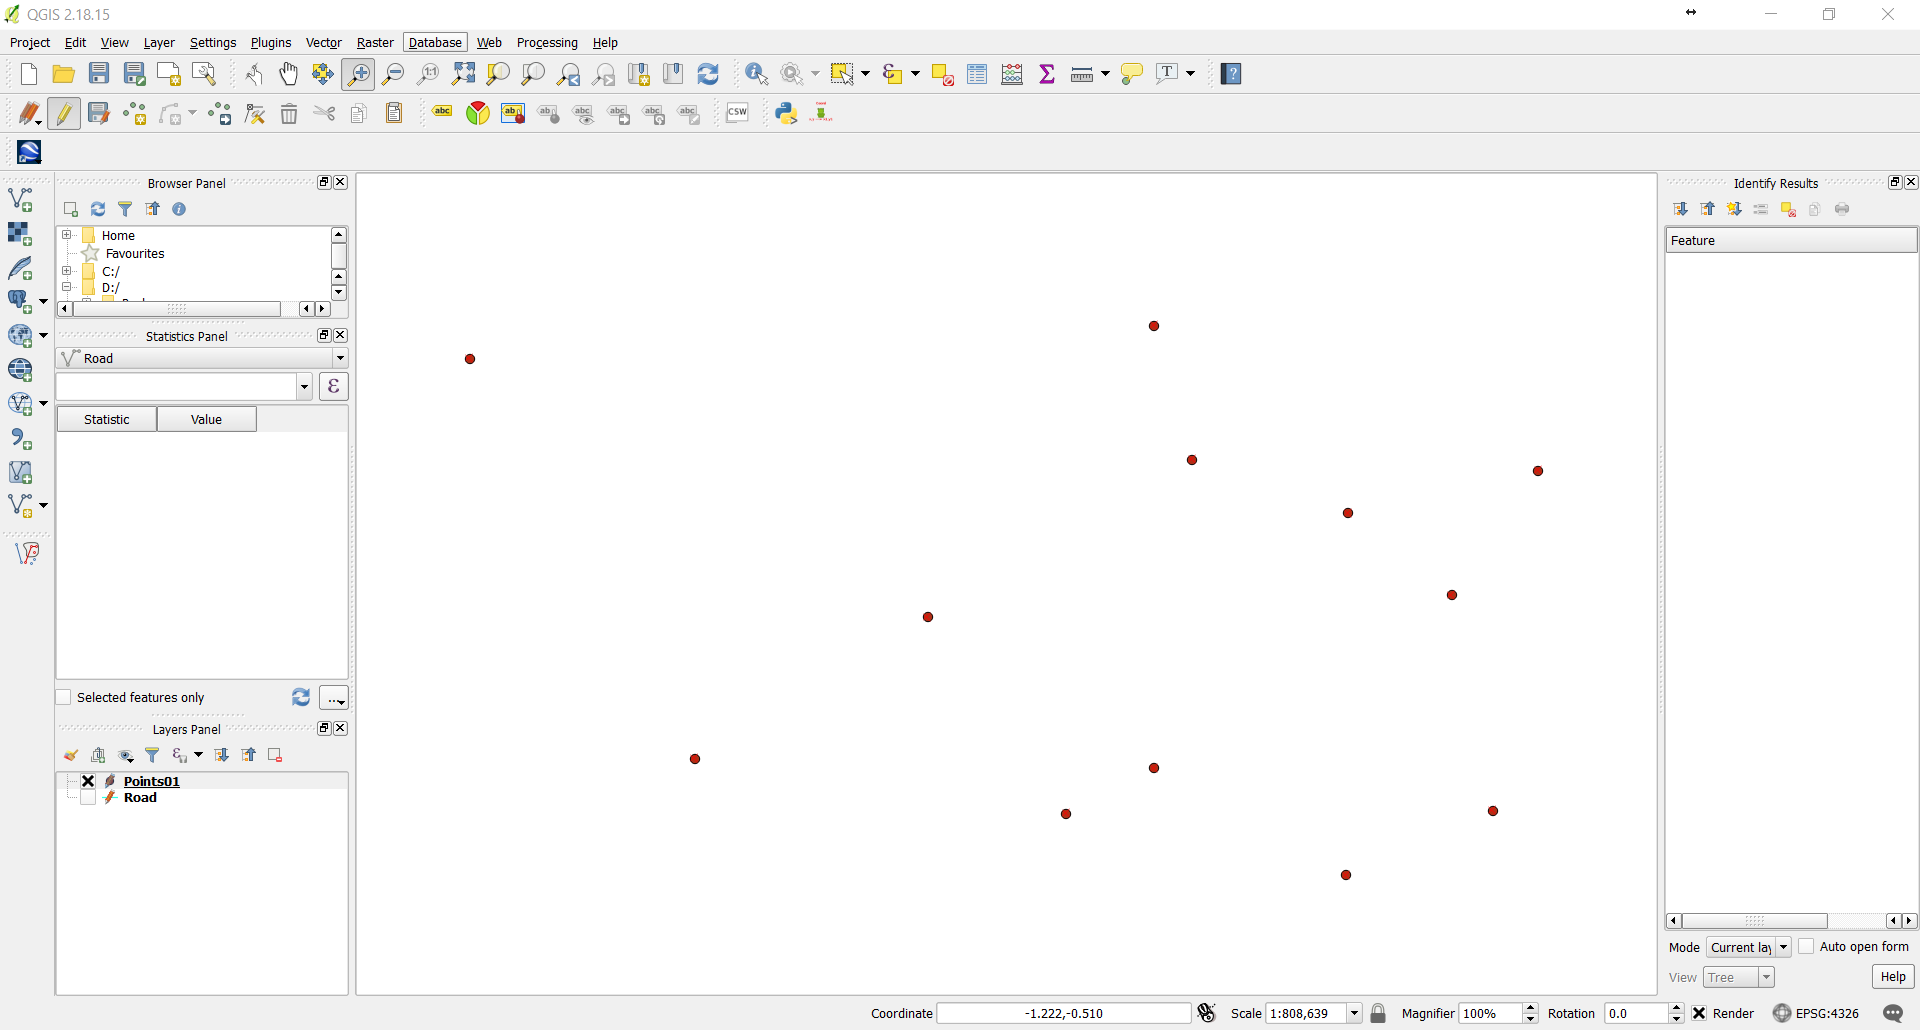 how to draw a line in qgis